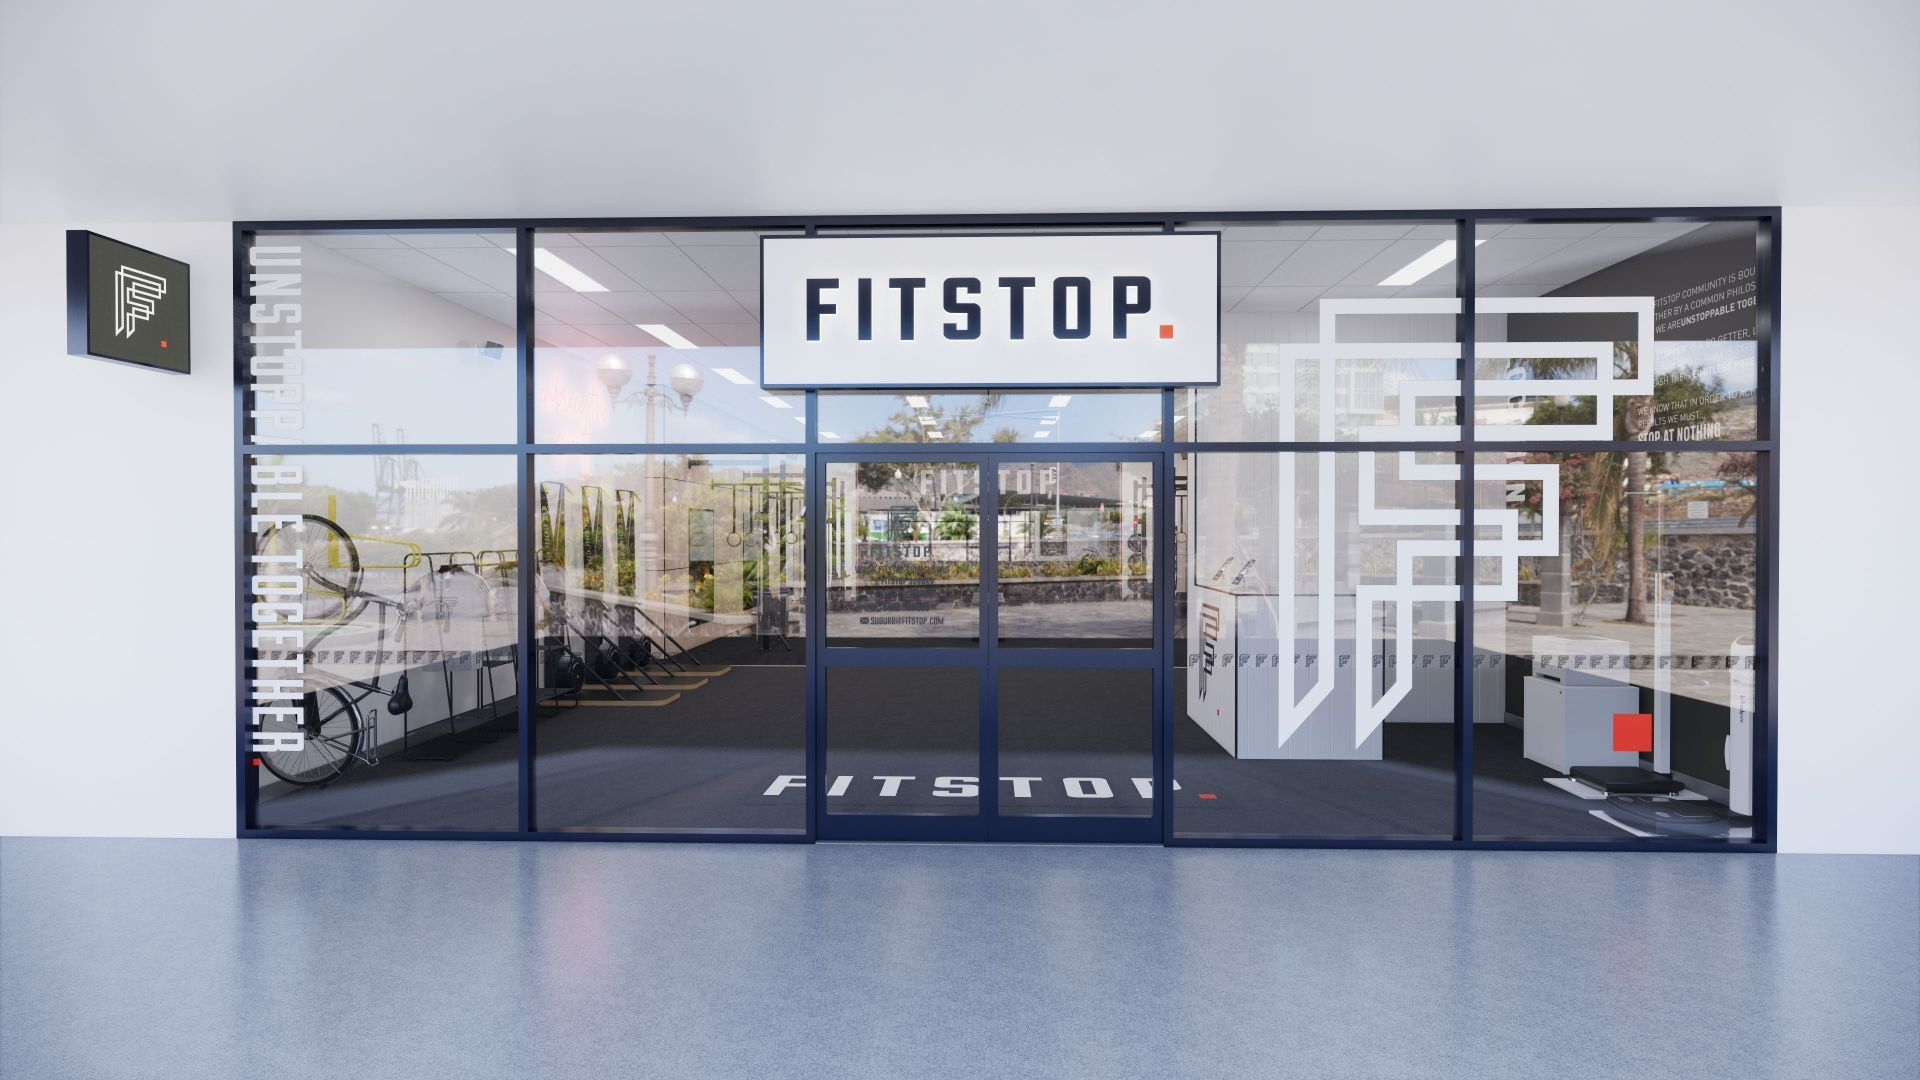 Fitstop reveals plan to double footprint this year | Inside Franchise Business Executive